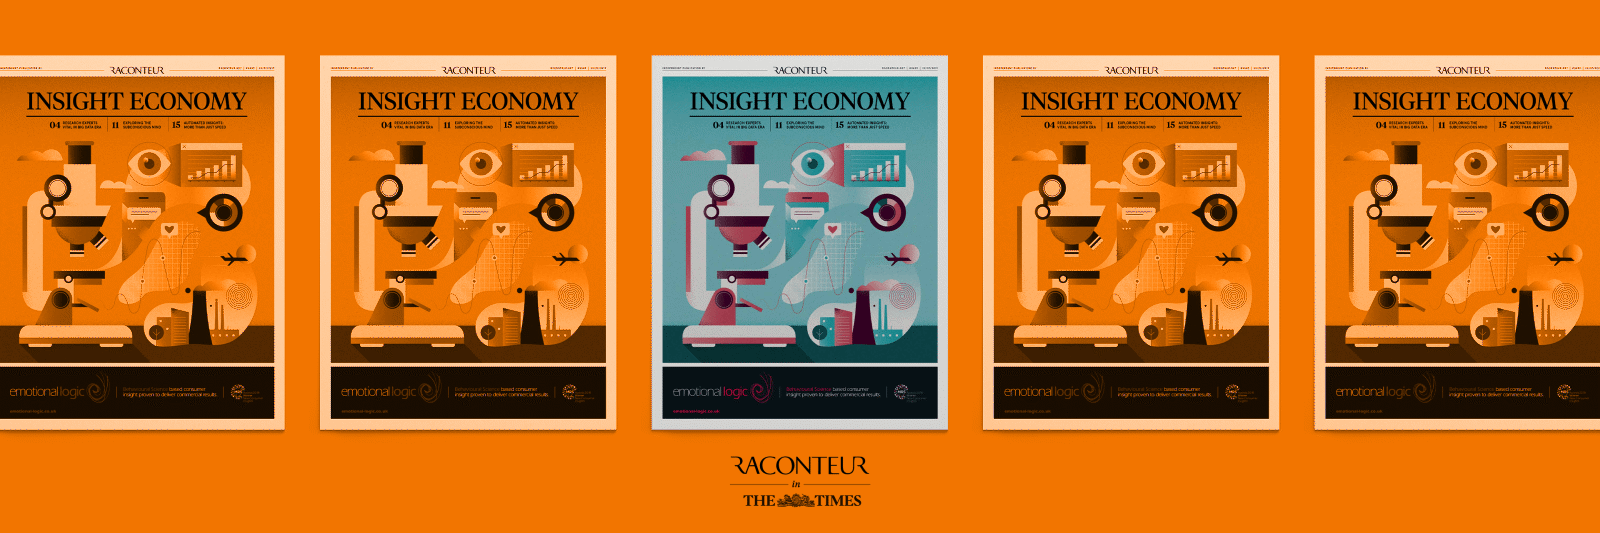 The Insight Economy Report